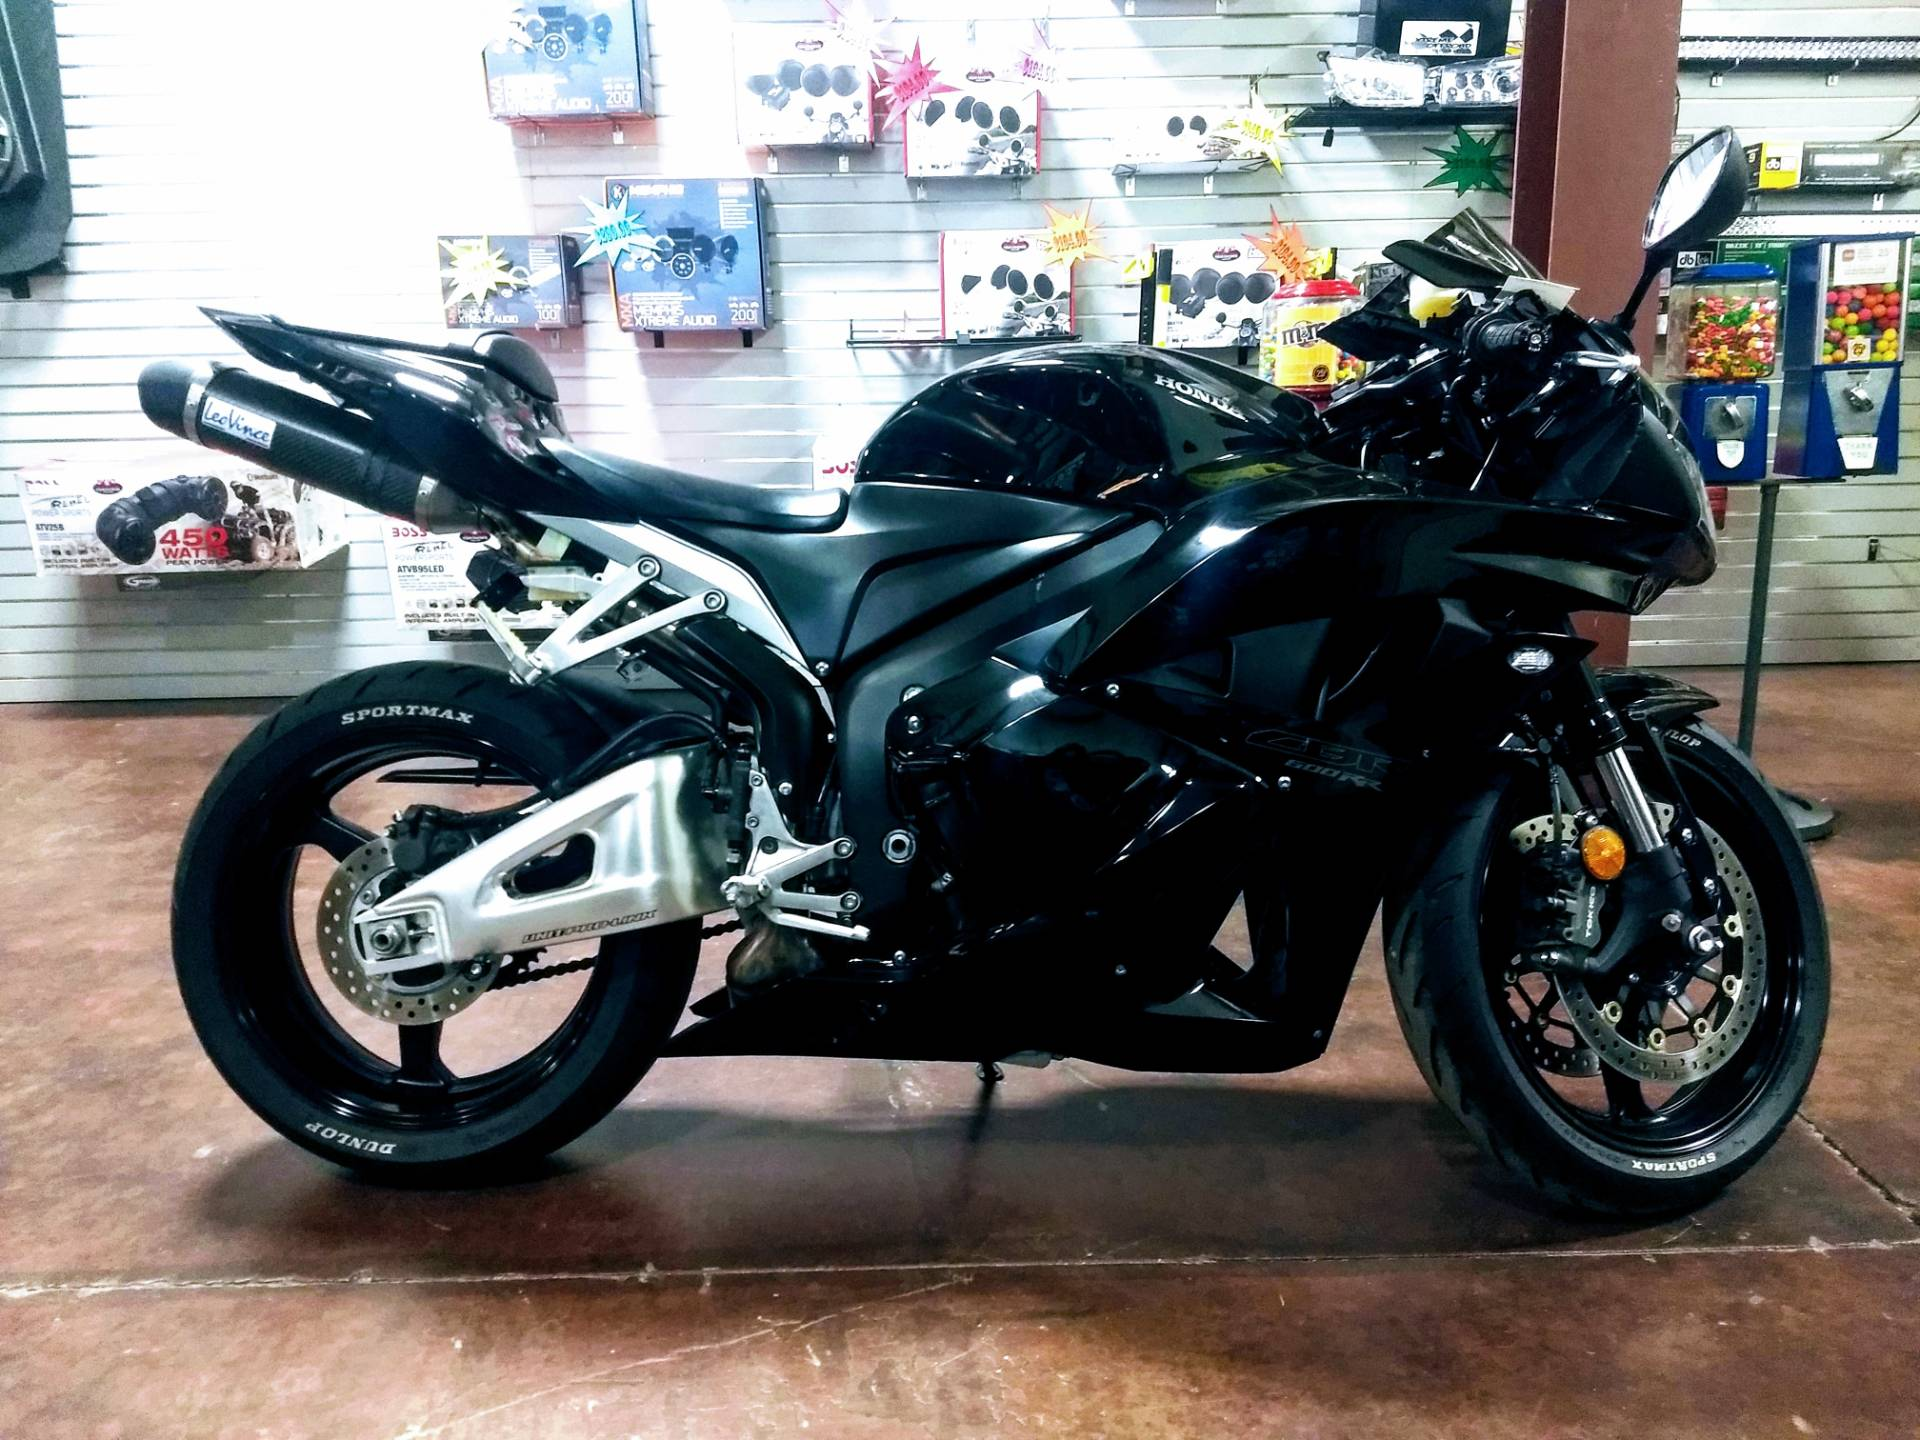 Used 2011 Honda Cbr600rr Motorcycles In Statesville Nc Stock